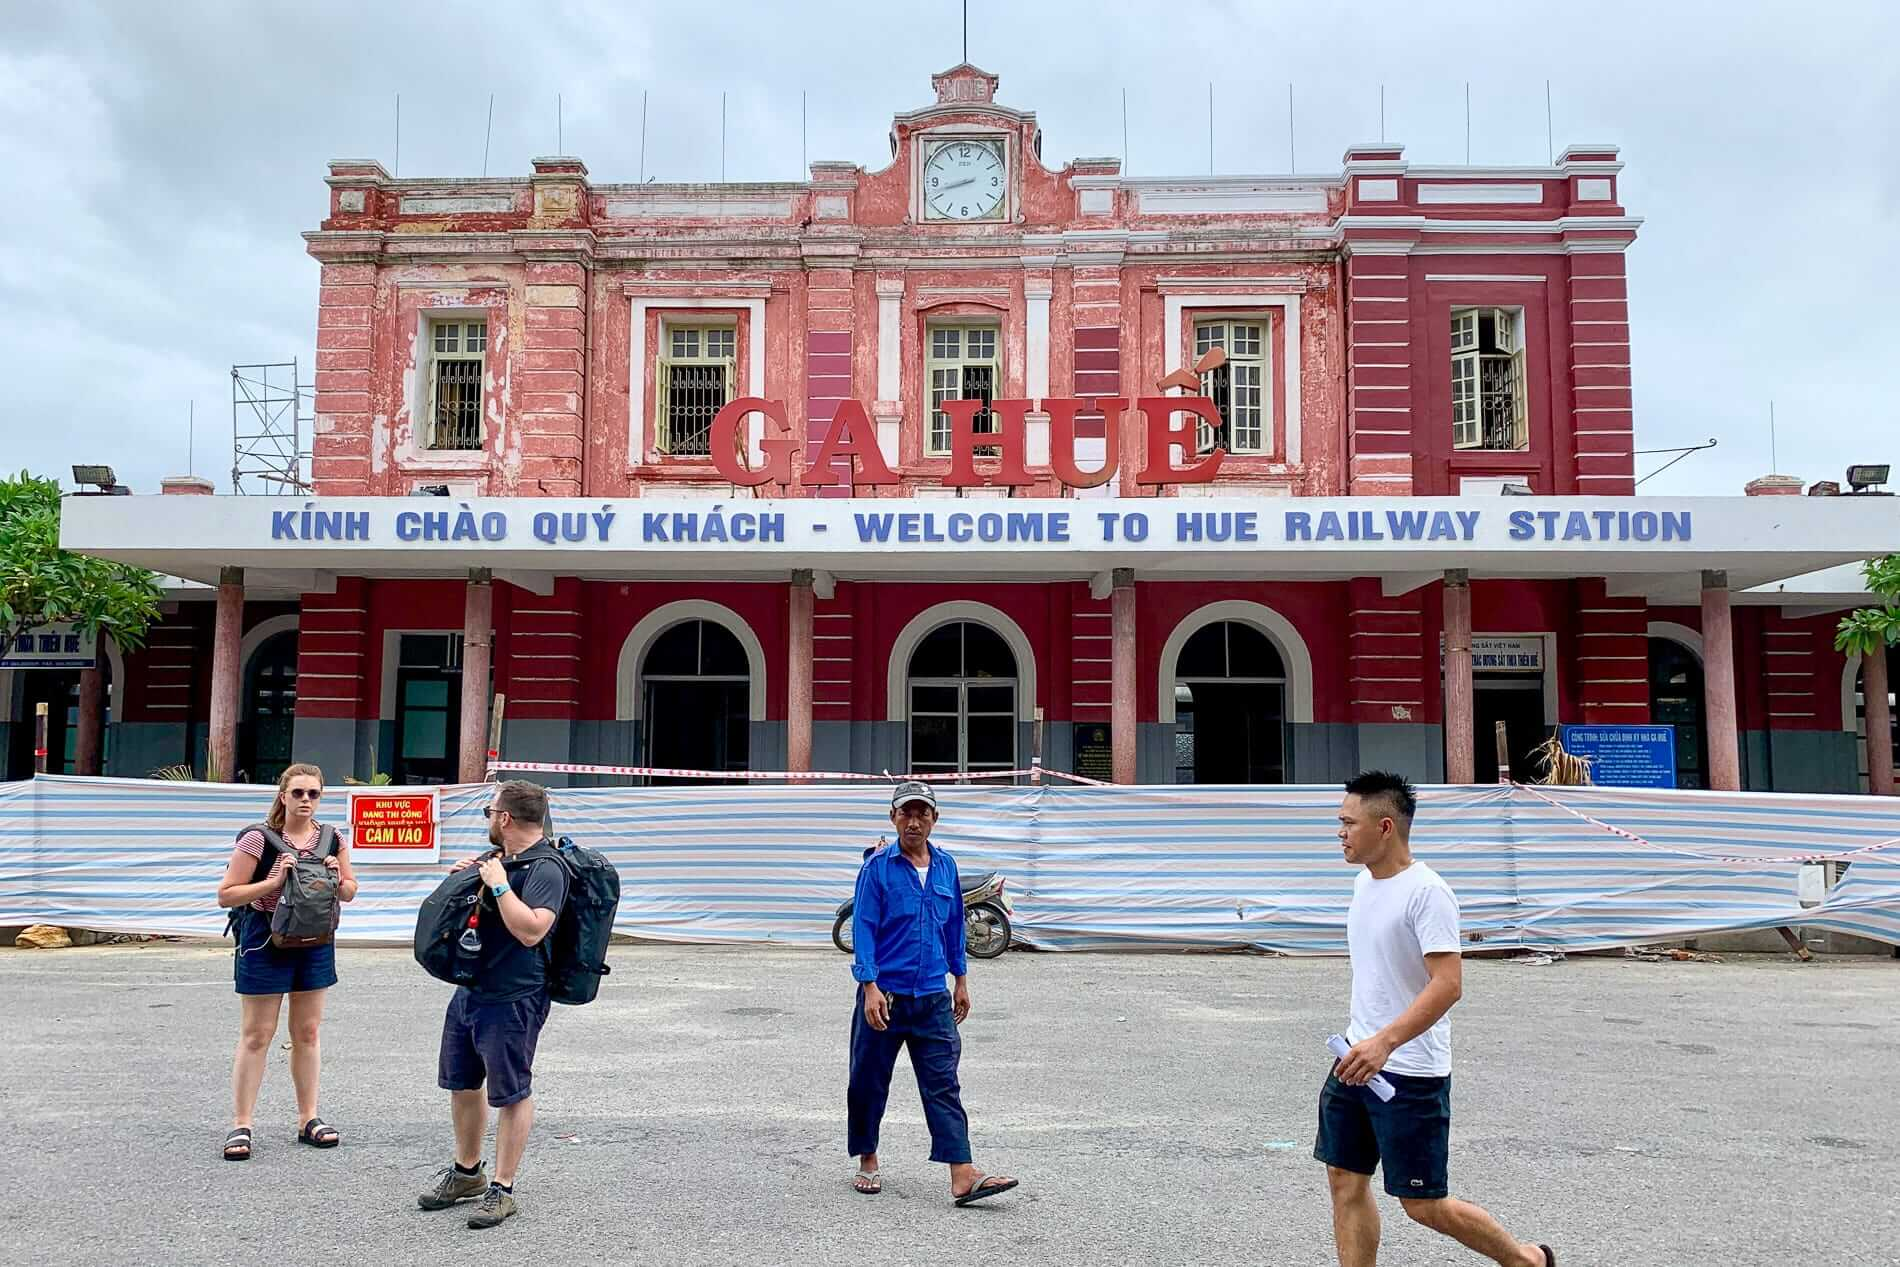 Hue Railway Station in the process of a facelift